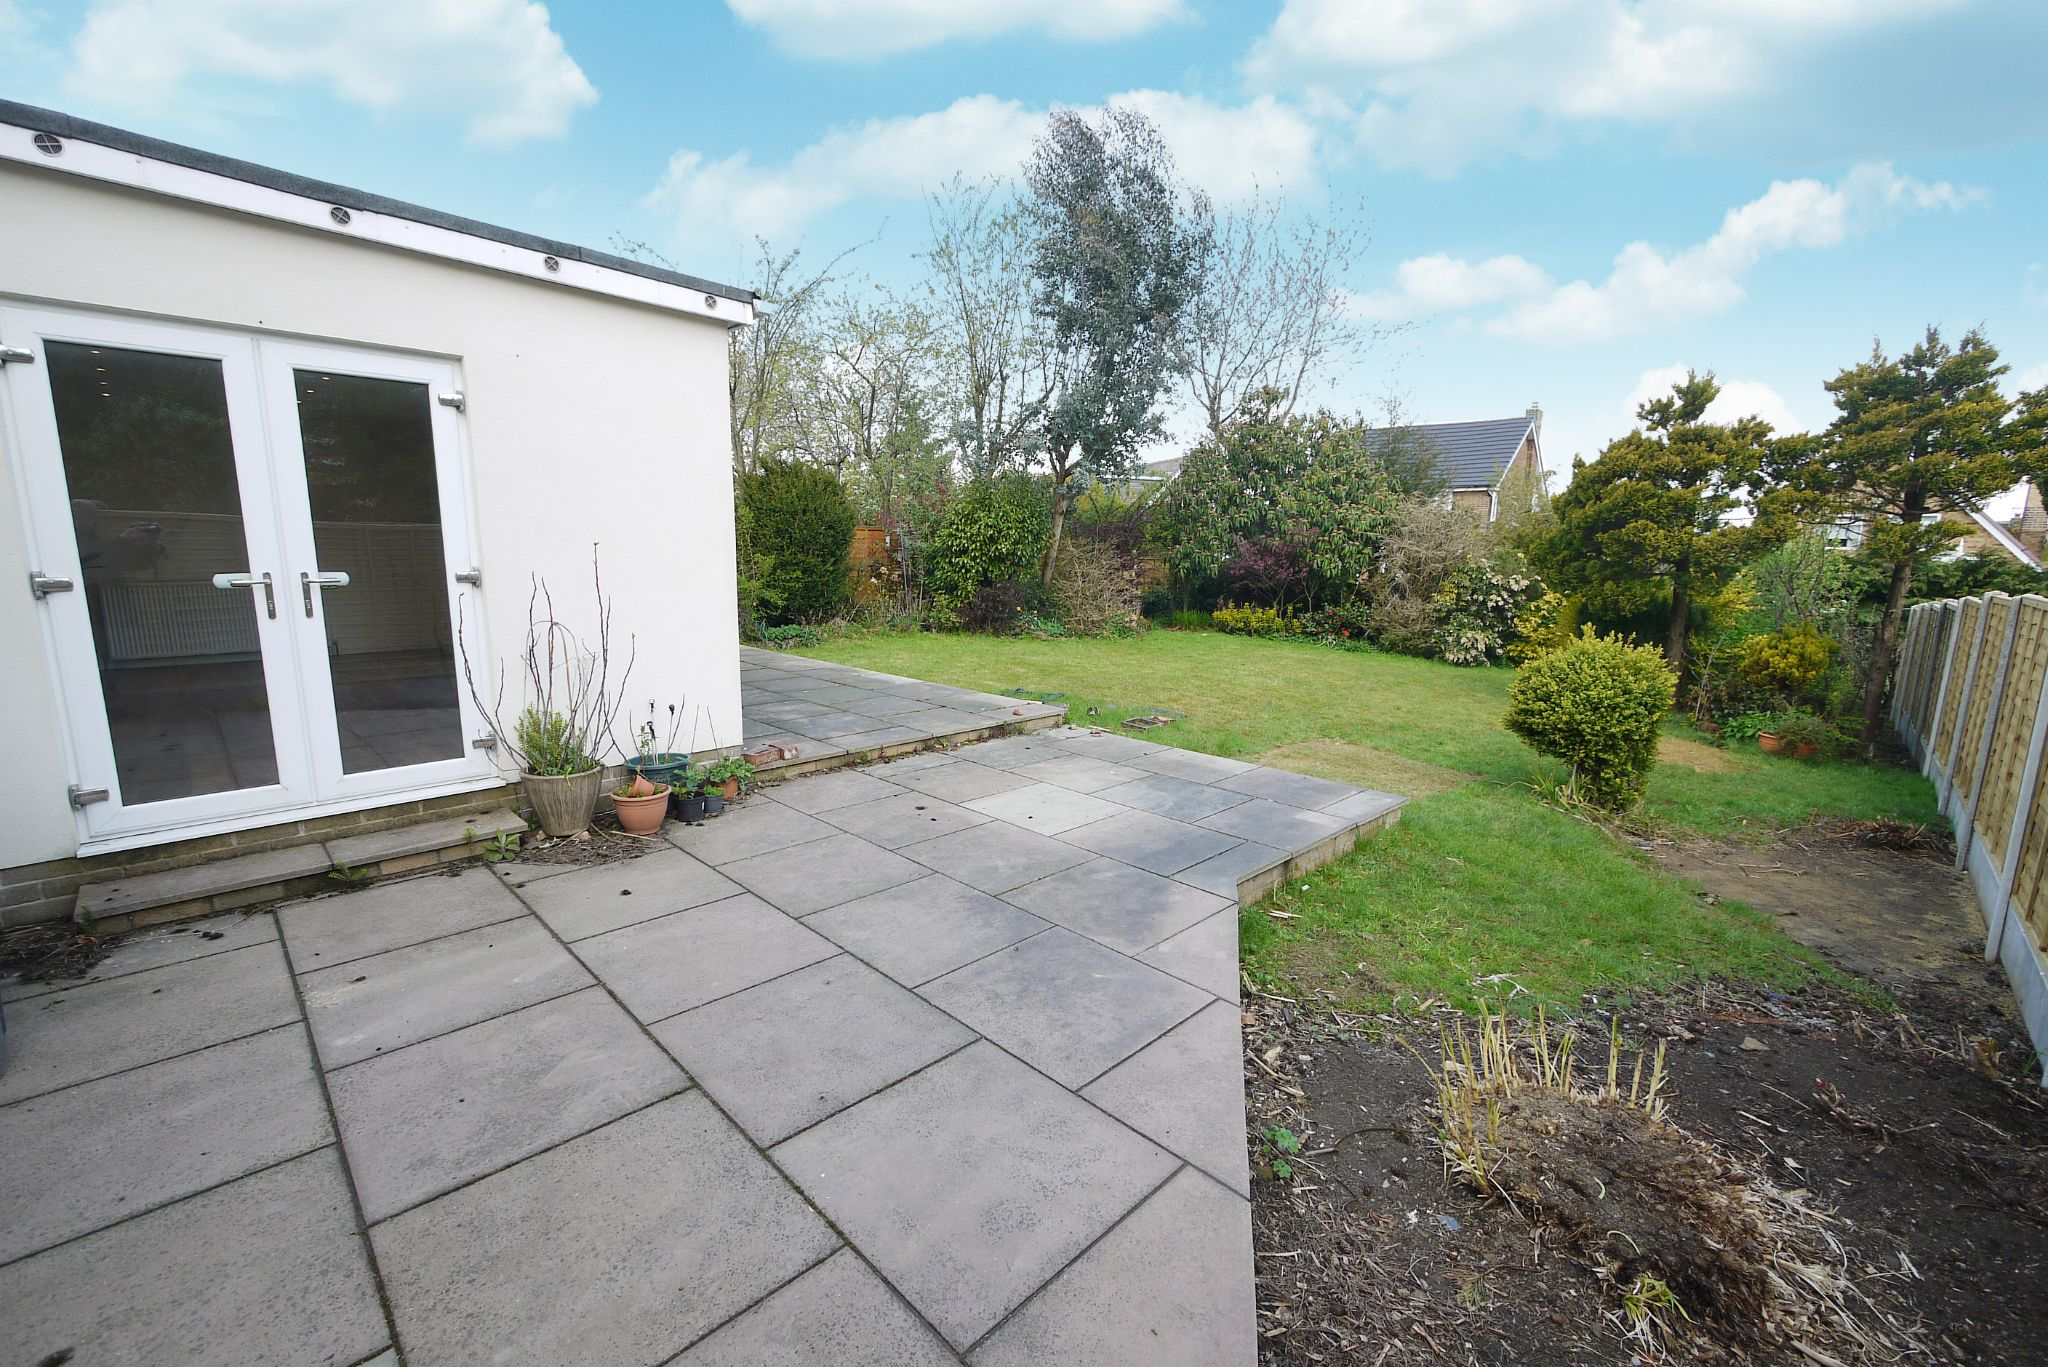 3 bedroom detached house SSTC in Brighouse - Photograph 15.